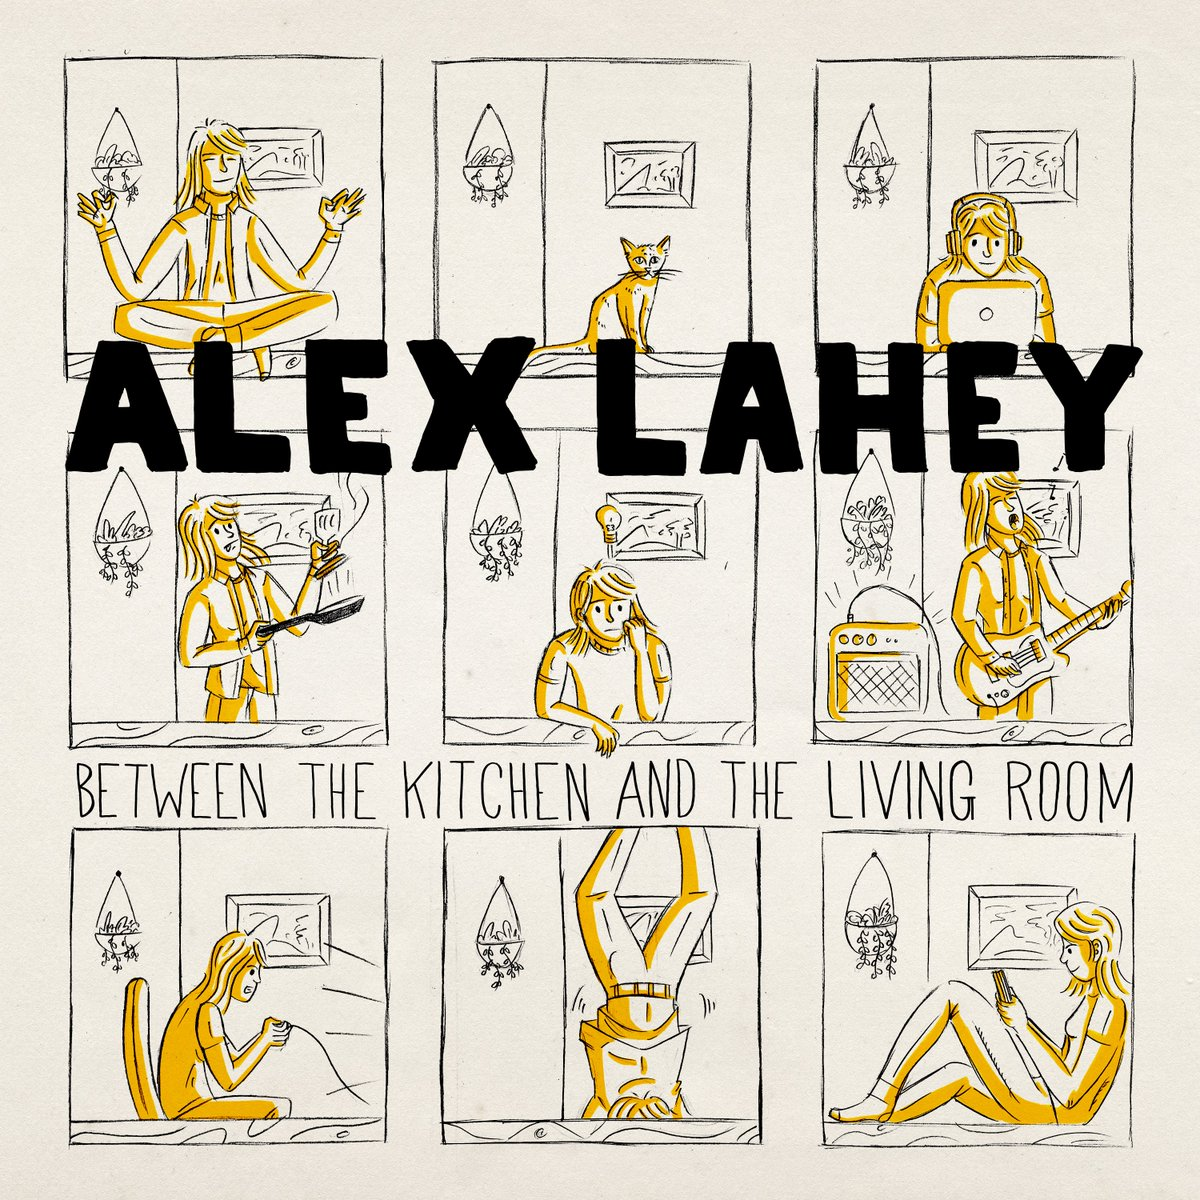 BETWEEN THE KITCHEN AND THE LIVING ROOM EP Out Friday 29 May at midnight wherever you are in the world alexlahey.lnk.to/BTKATLR